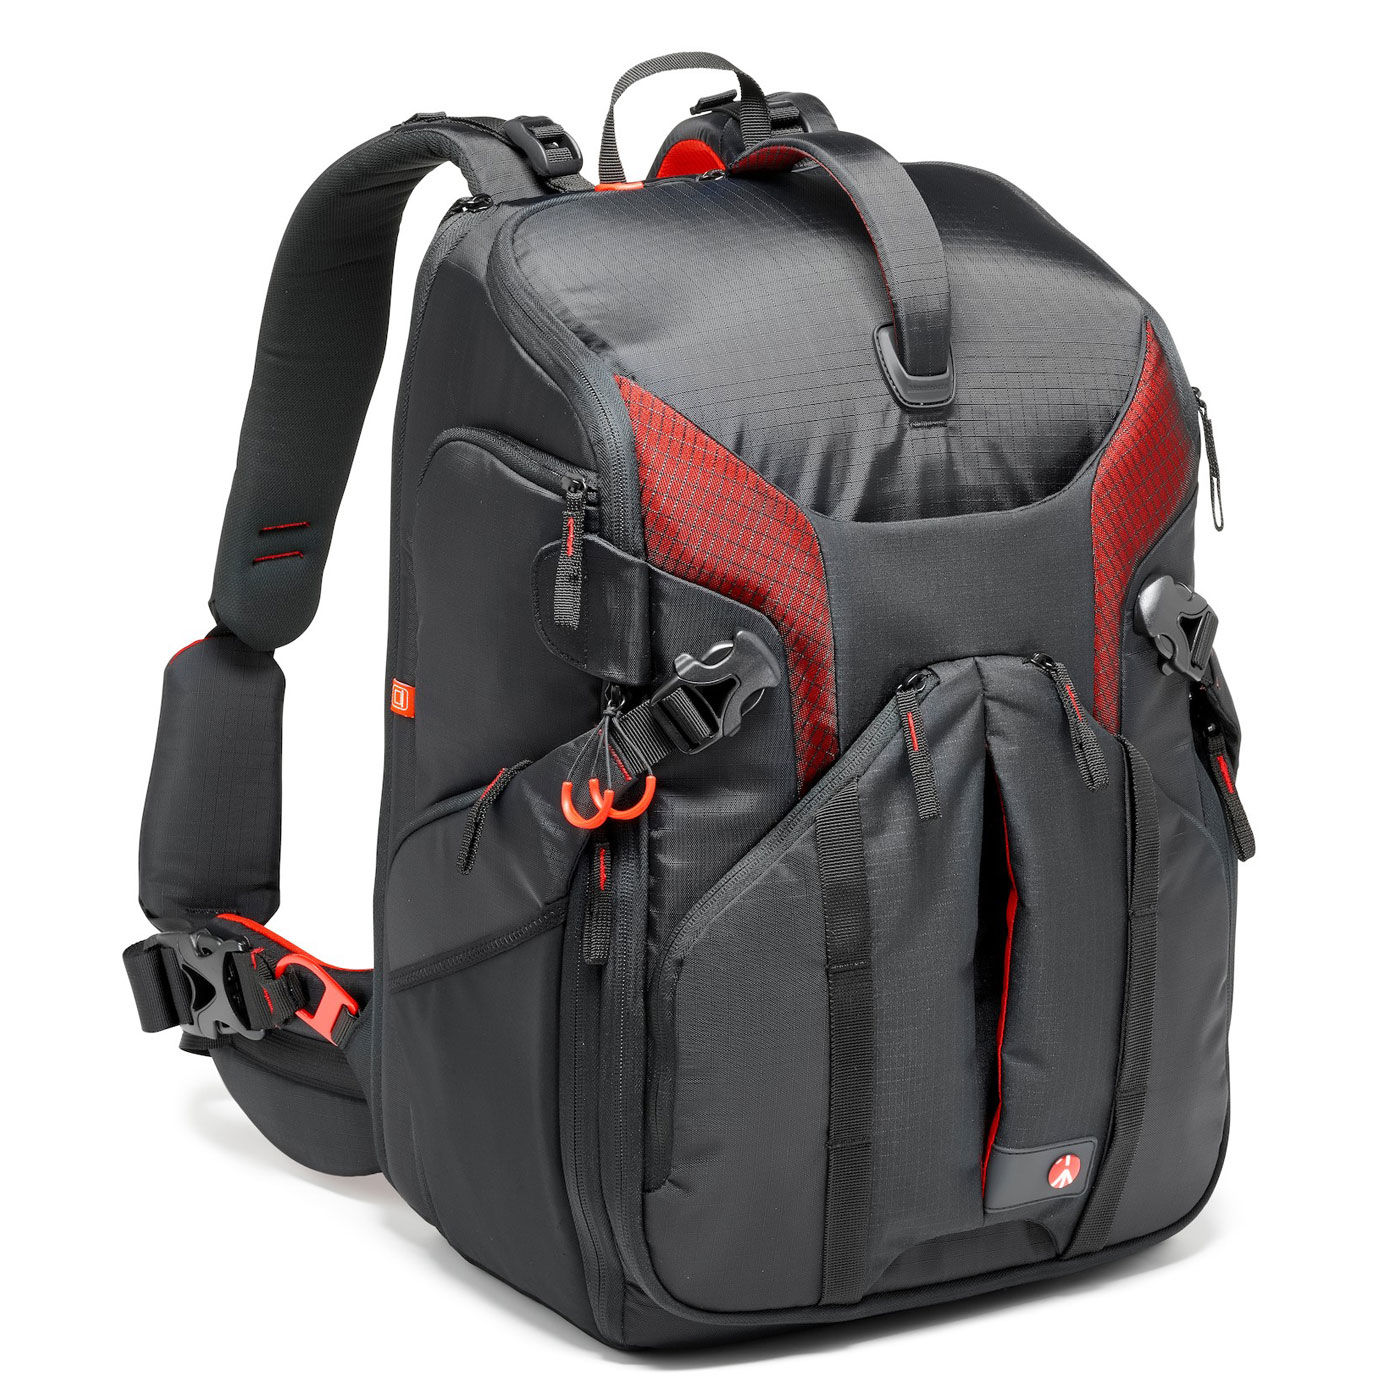 manfrotto pro light sling mb pl 3n1 36 sac tui photo manfrotto sur. Black Bedroom Furniture Sets. Home Design Ideas